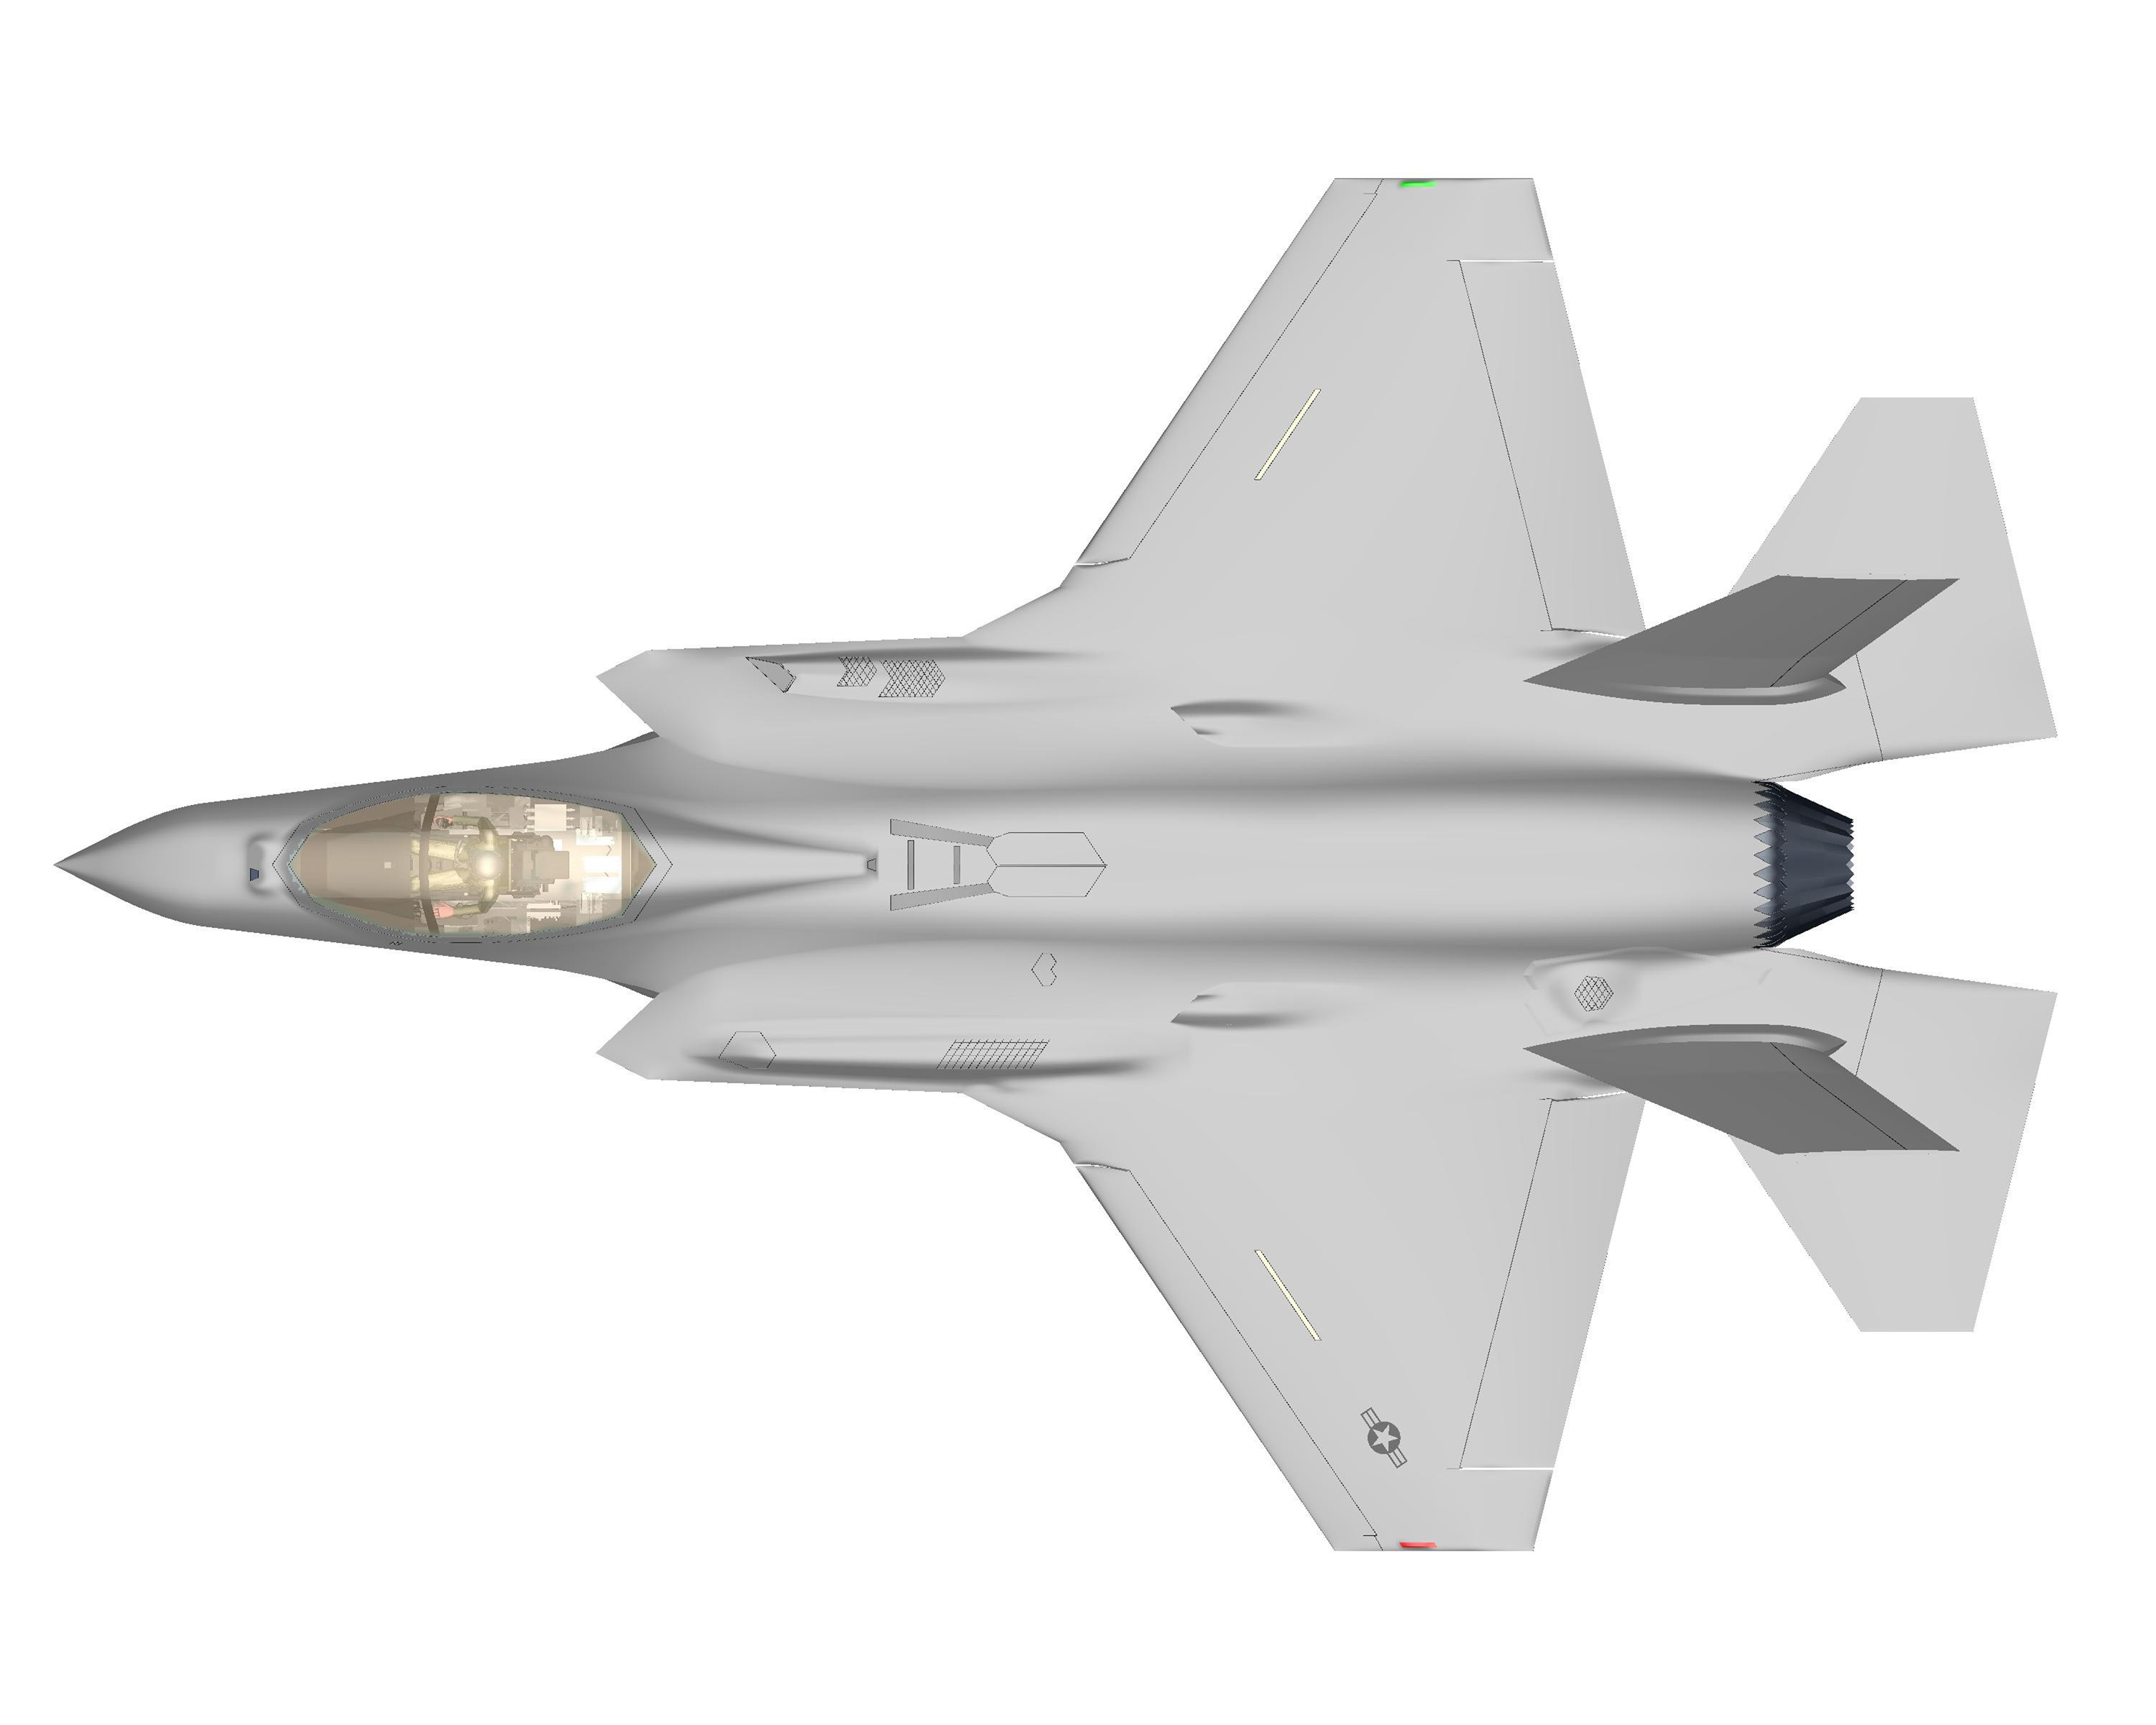 Computer and Geometrical ysis of the F-35A Lightning II